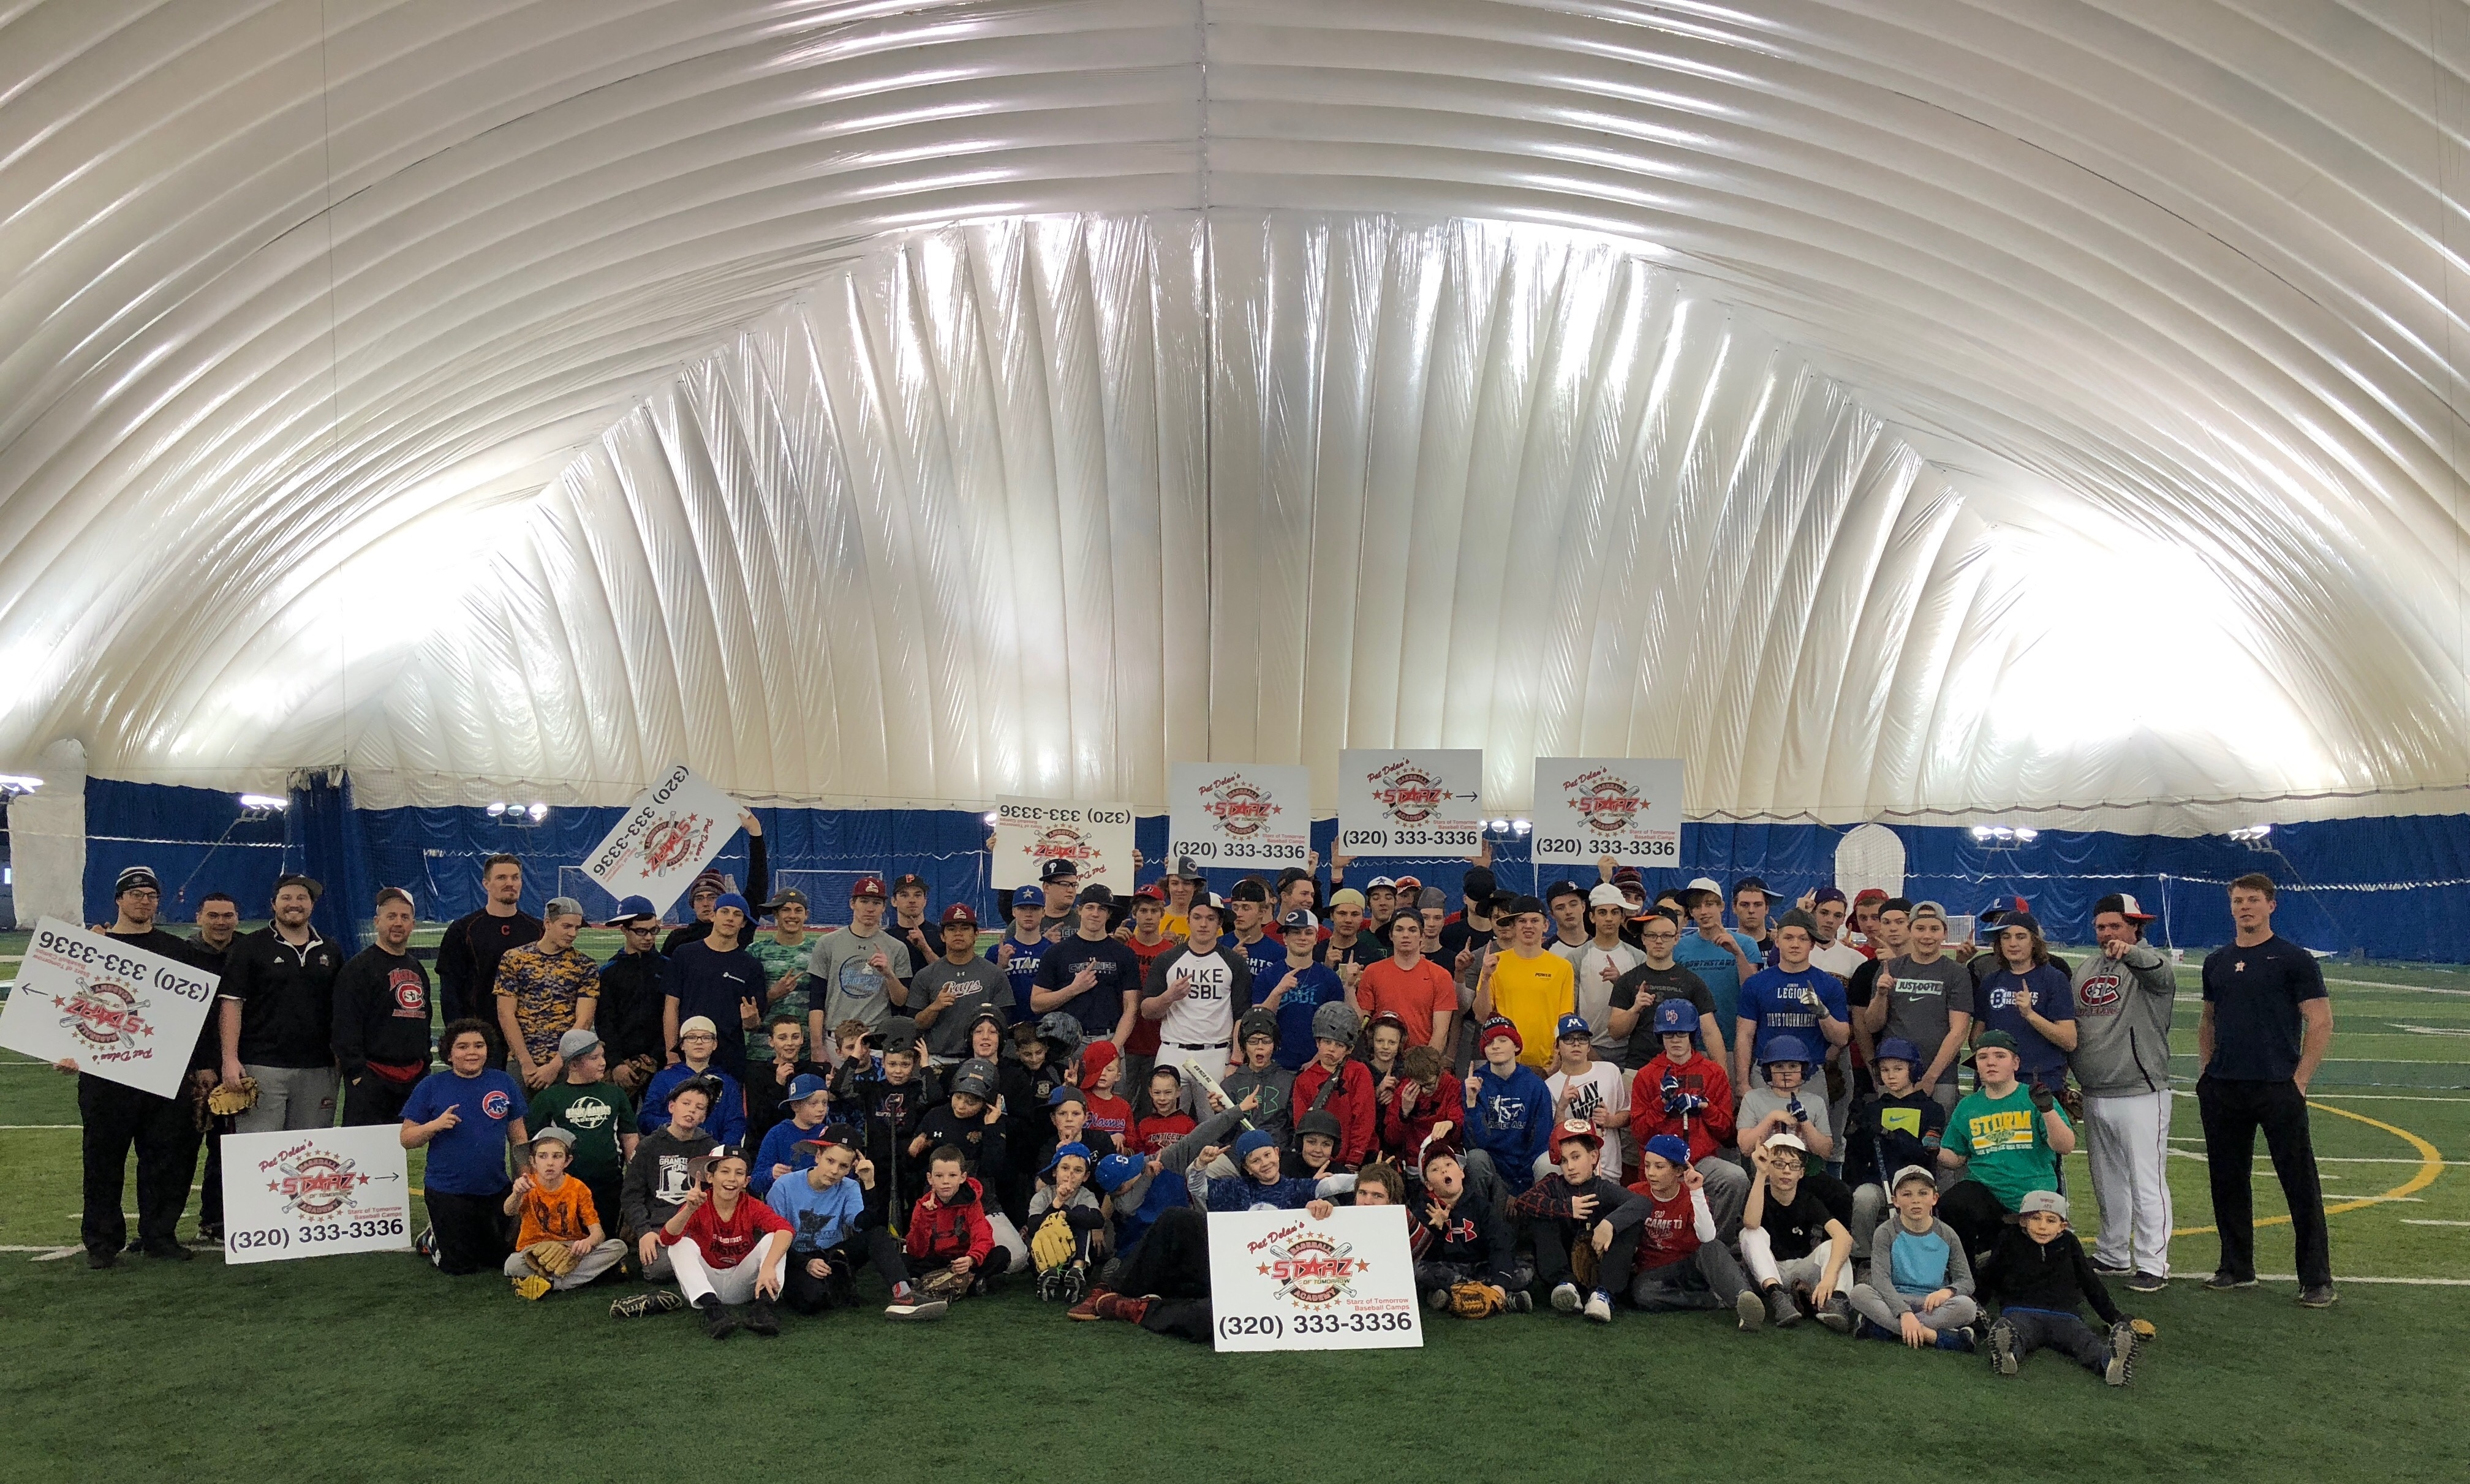 Almost 100 players at the Presidents' Day Camp!